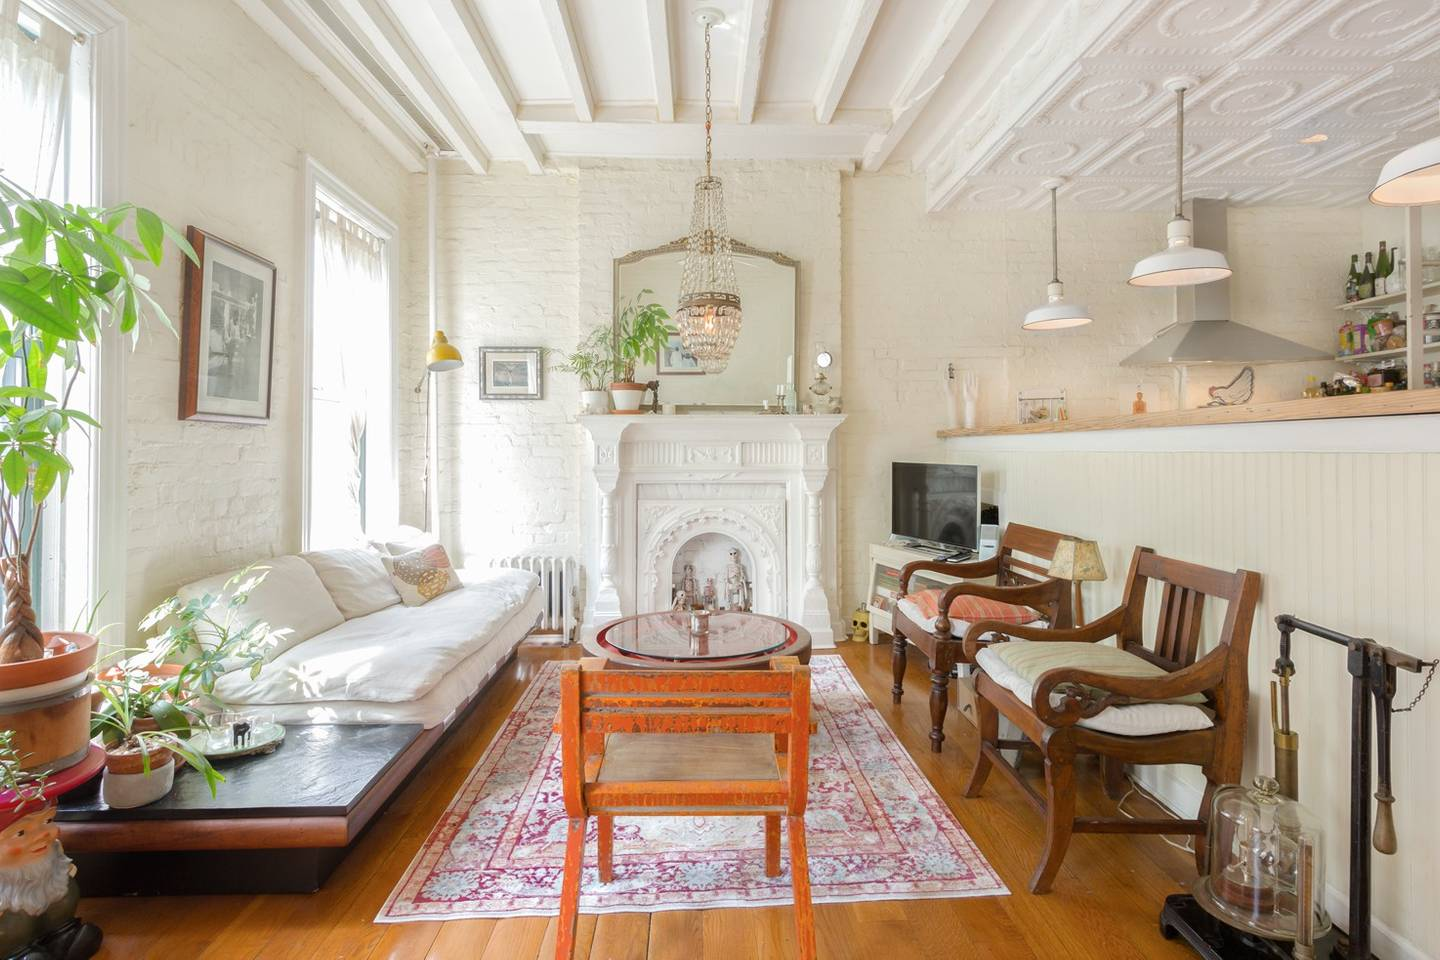 luxurious and tasteful airbnb brooklyn home